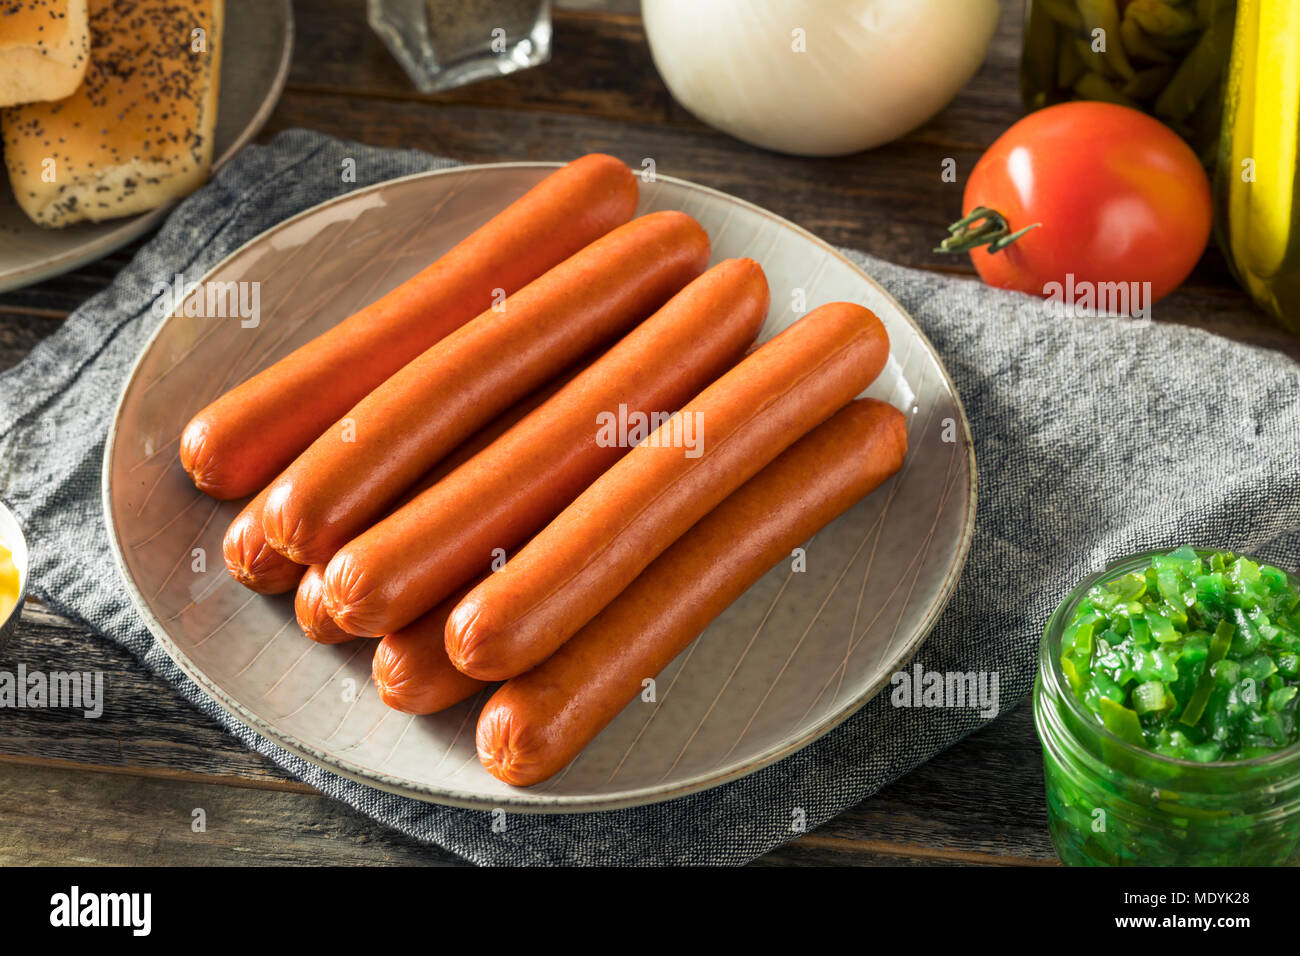 Chicago Style Hot Dog Ingredients with Mustard Pickles Relish Tomato and Peppers - Stock Image